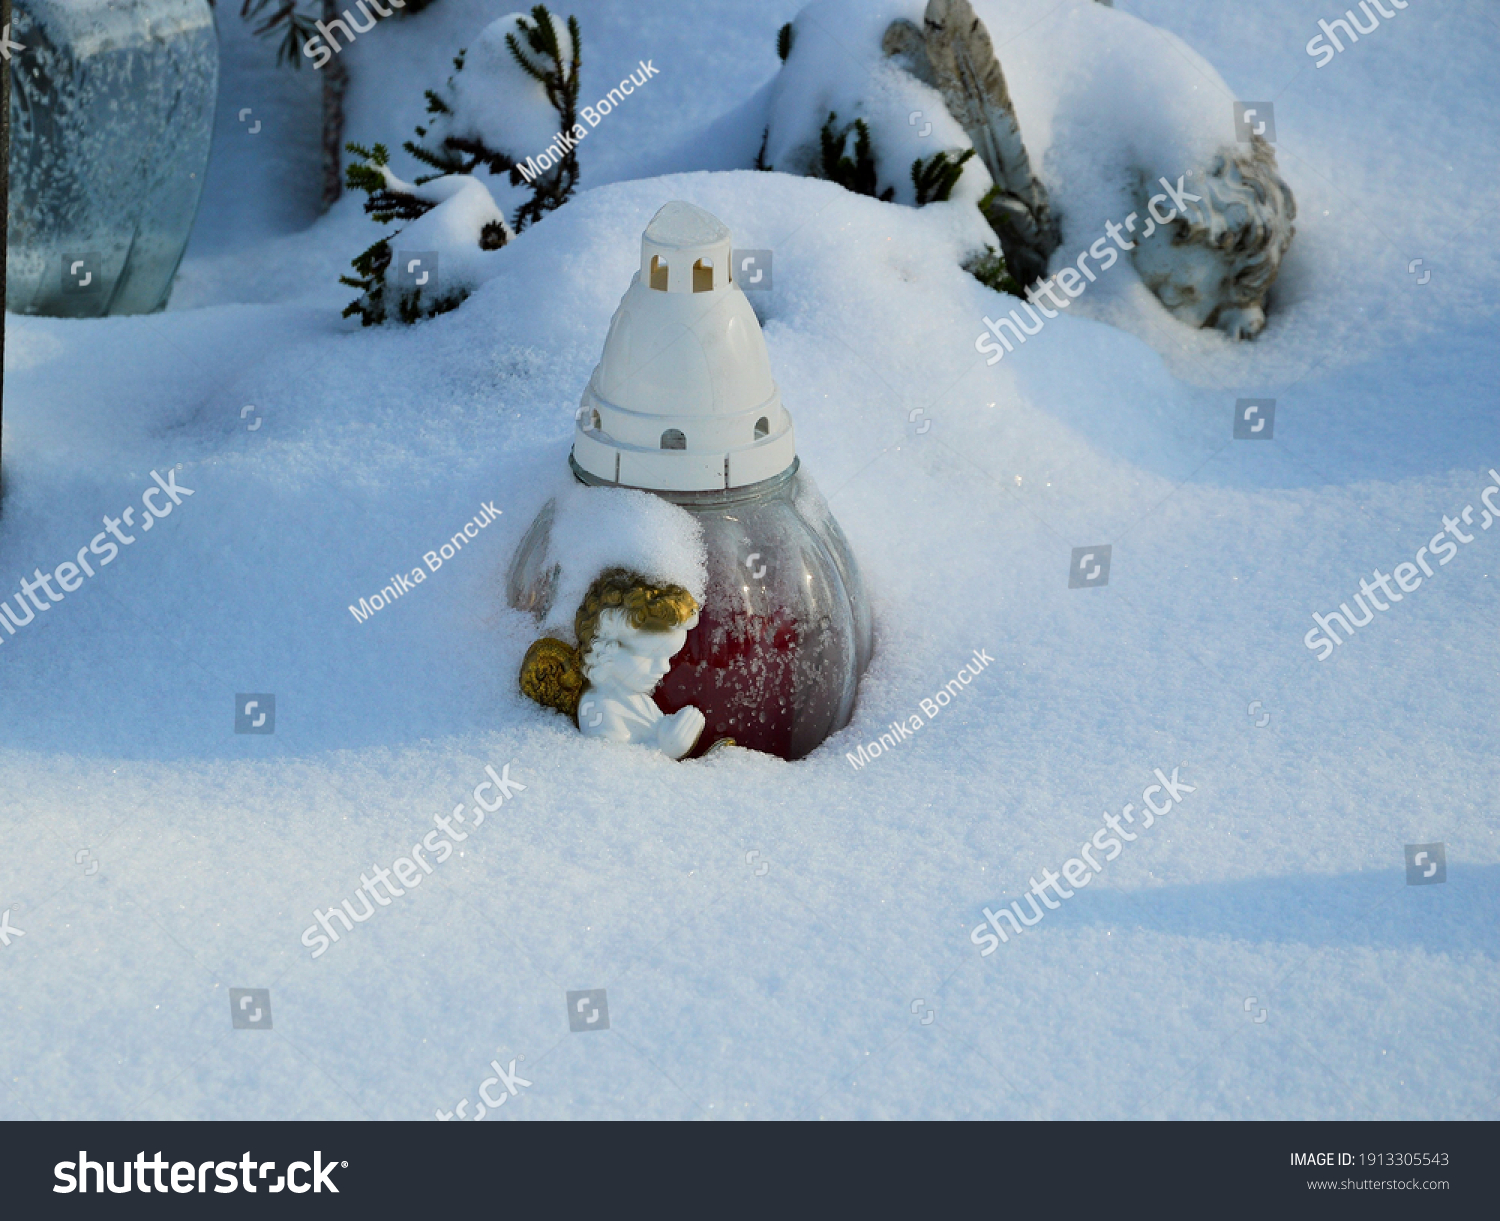 stock-photo-a-candle-and-angel-snow-cove